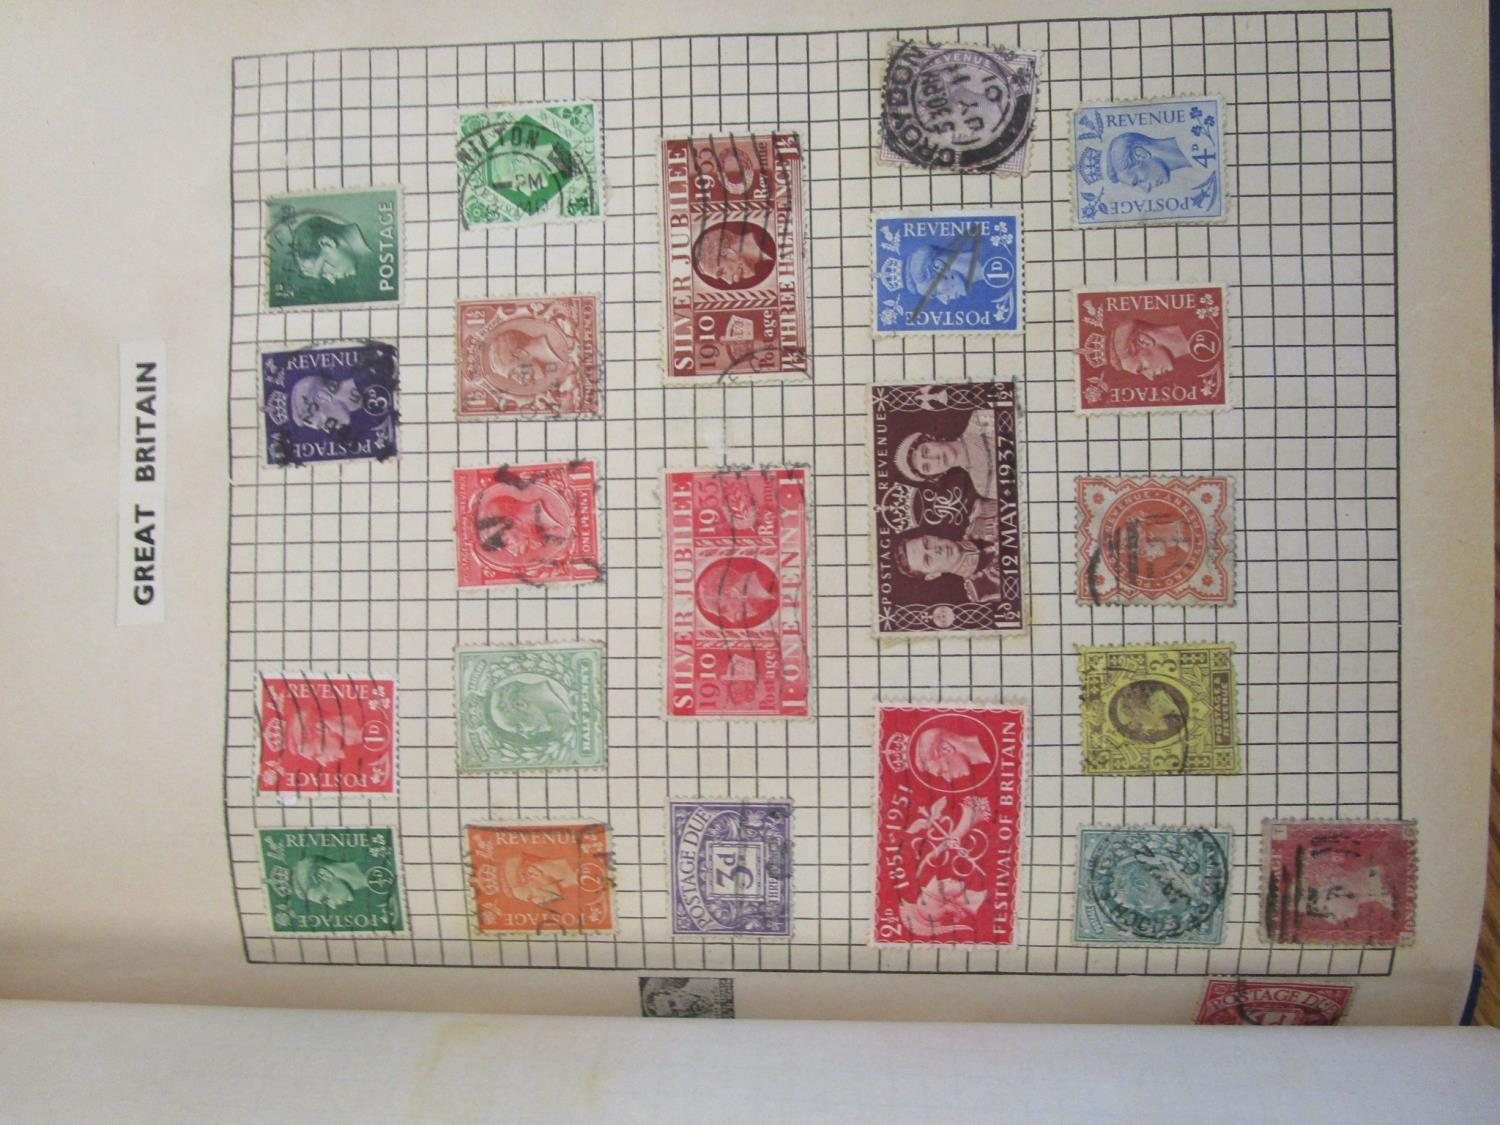 Mixed stamps from around the world mounted in albums and loose to include Victorian Penny Reds, - Image 4 of 18